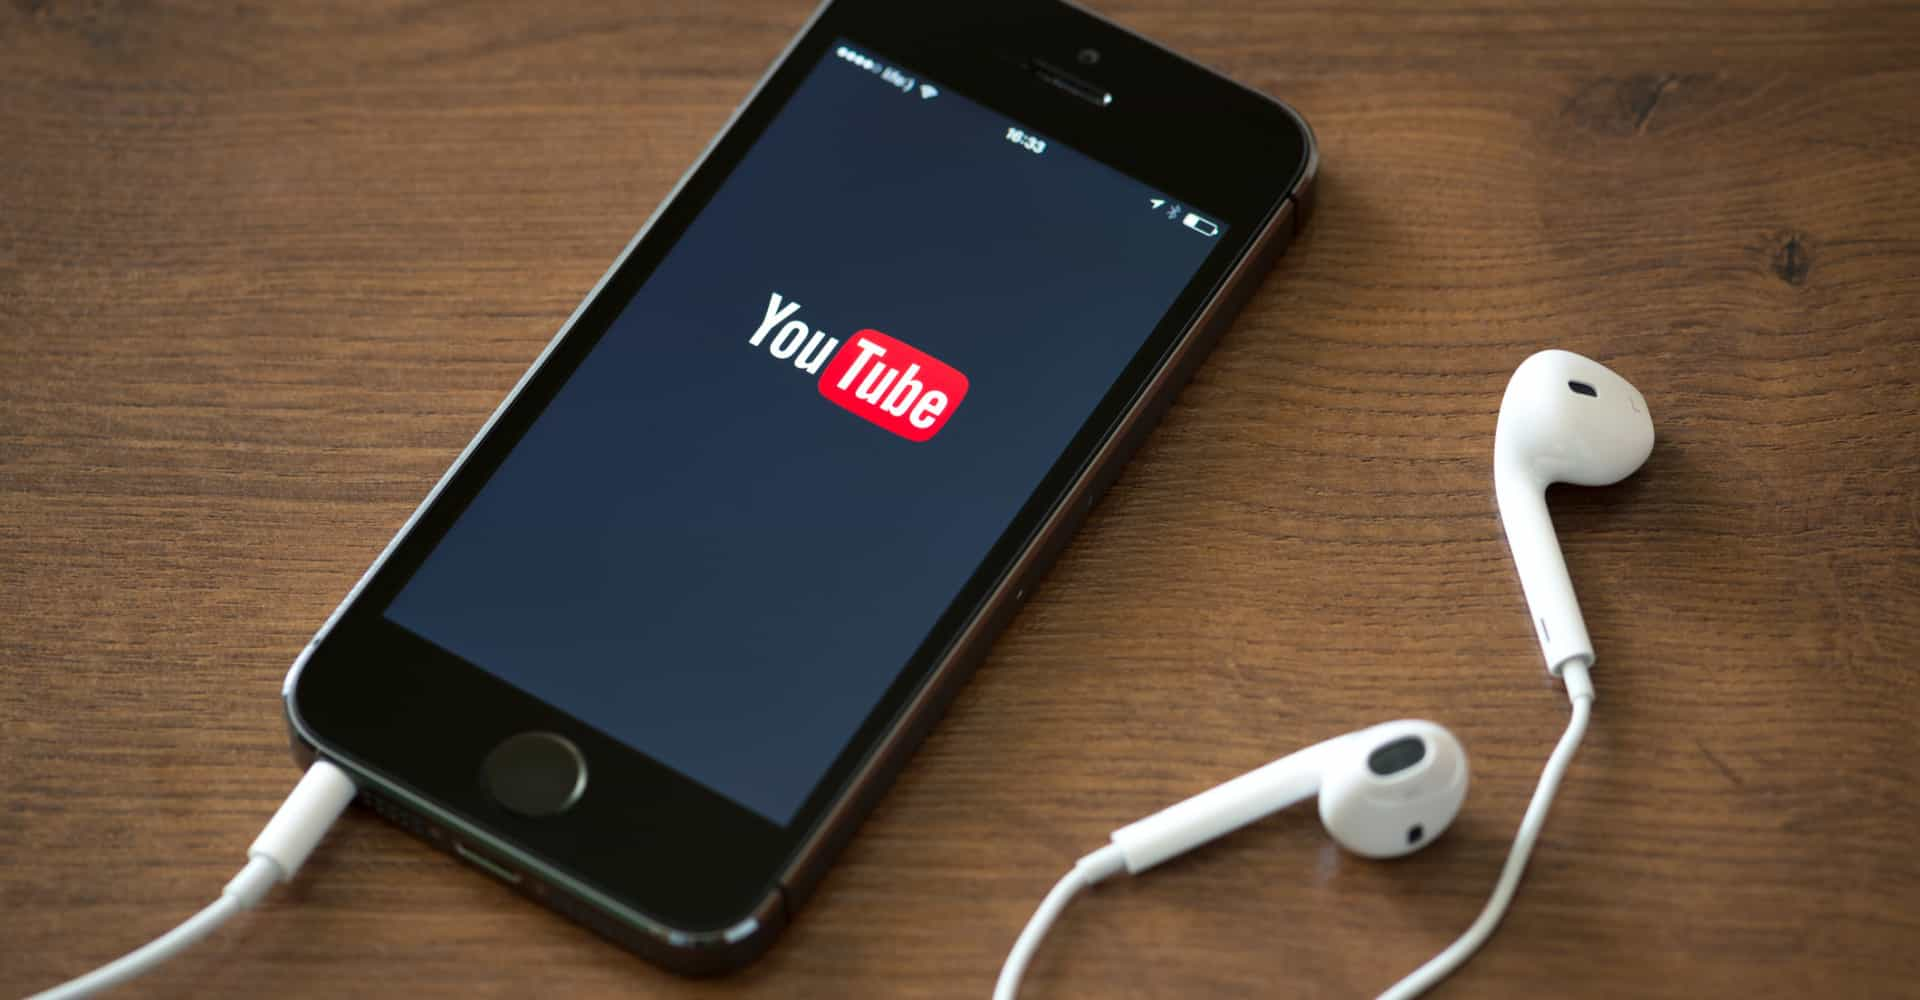 YouTube Music: a streaming service to rival Spotify?